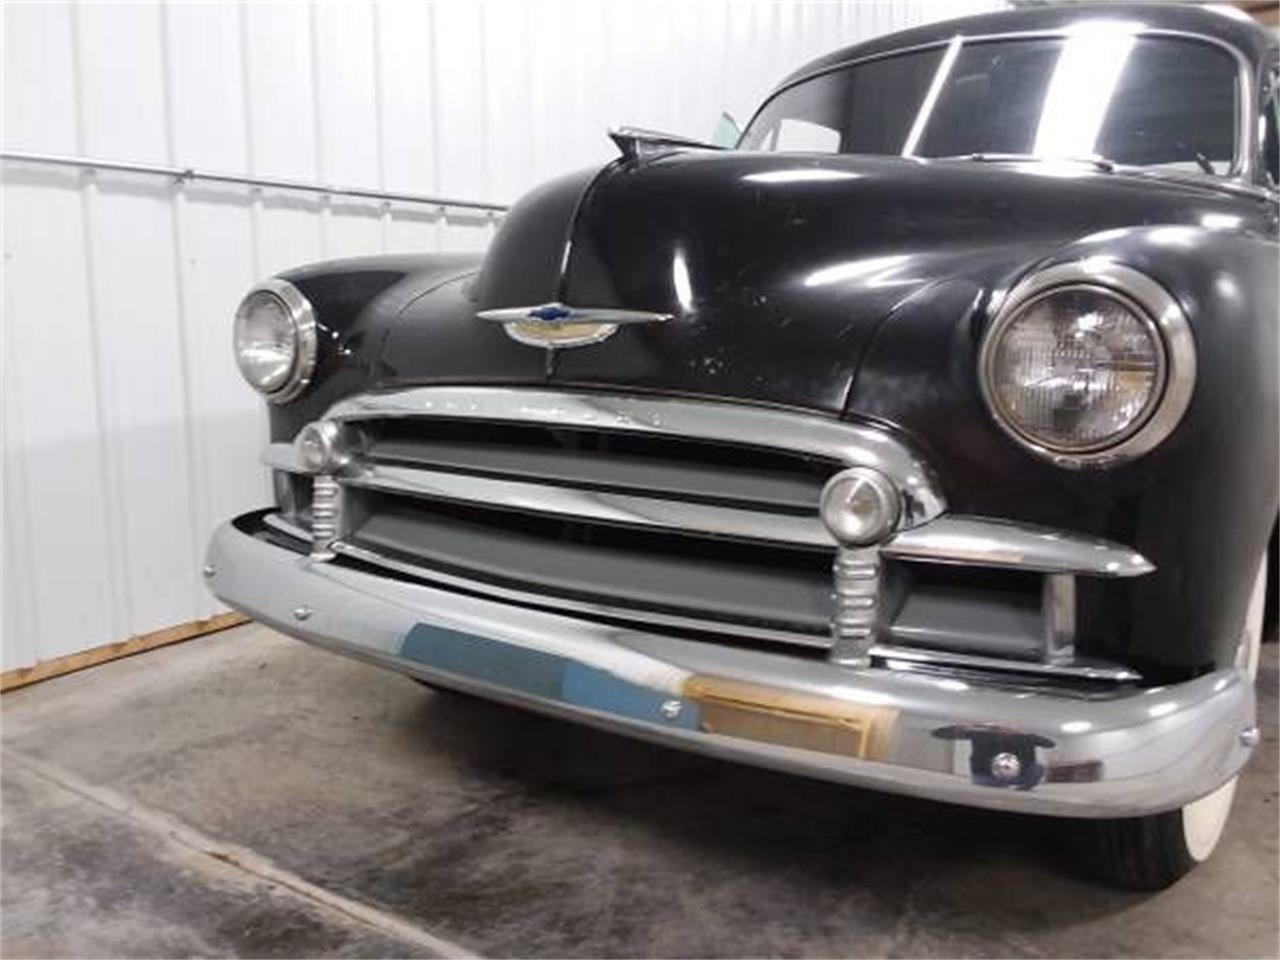 Large Picture of '50 Chevrolet Sedan Delivery Offered by Classic Car Deals - PQ2Q